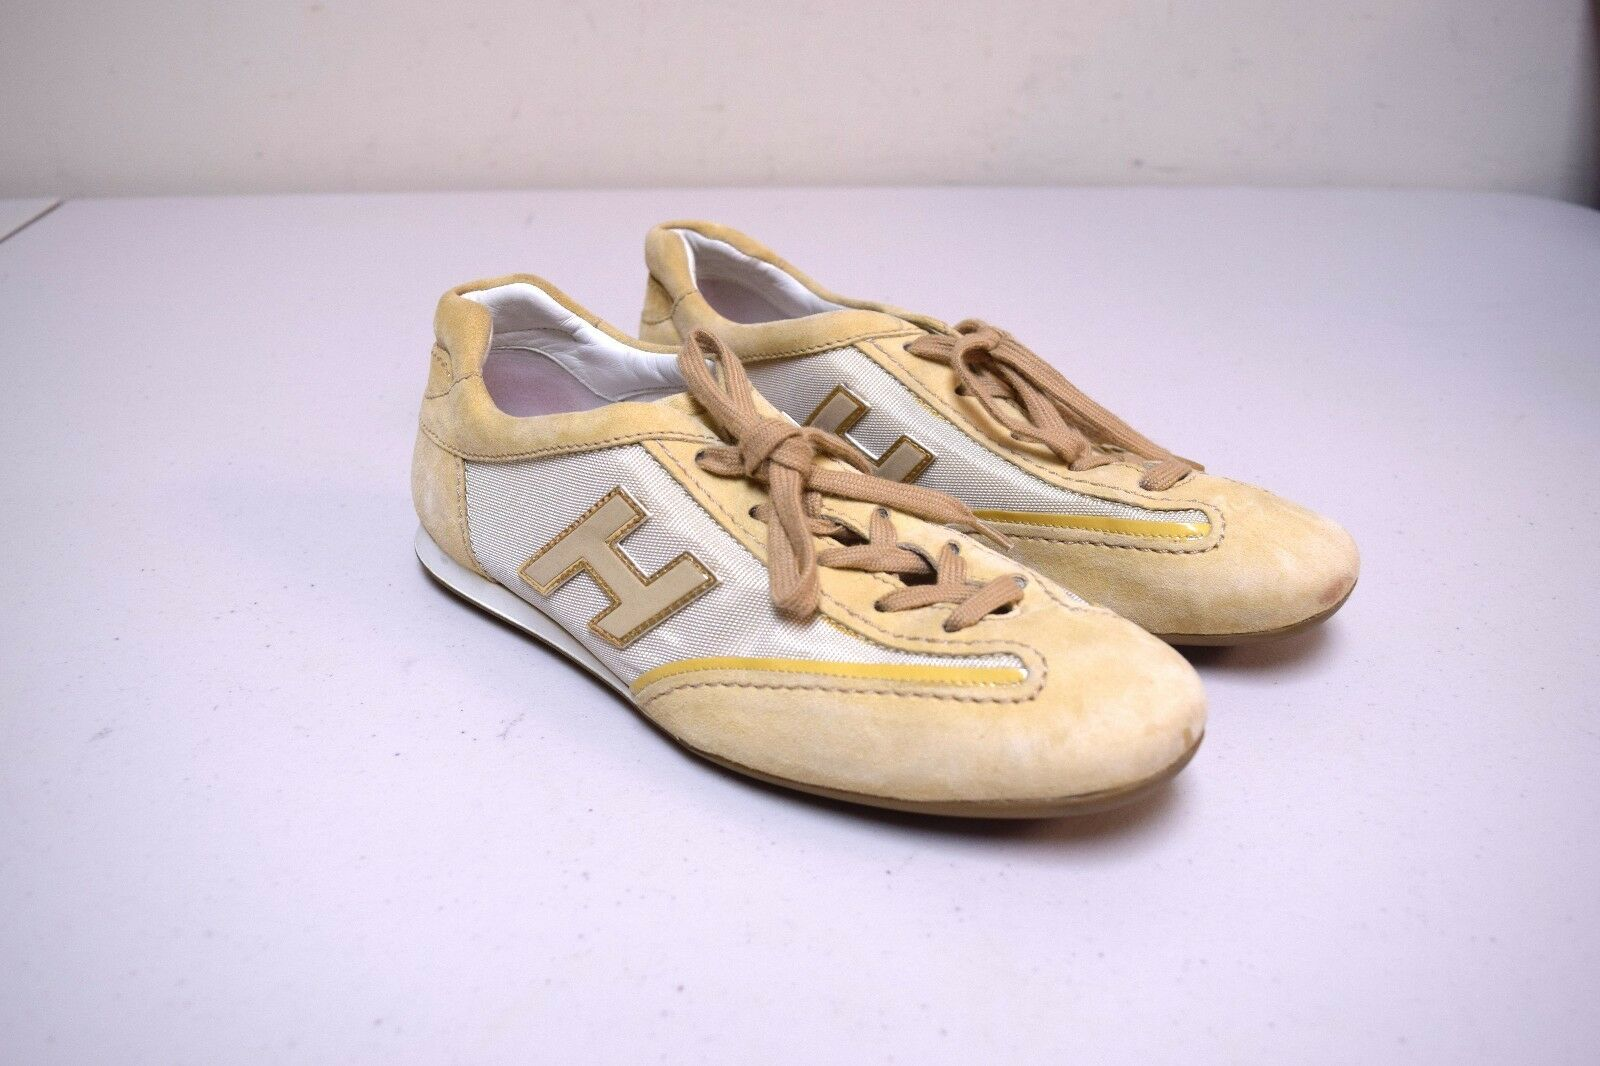 HOGAN  Sand Beige Classic Trainers Sneakers Athletic Sport shoes Size 38.5